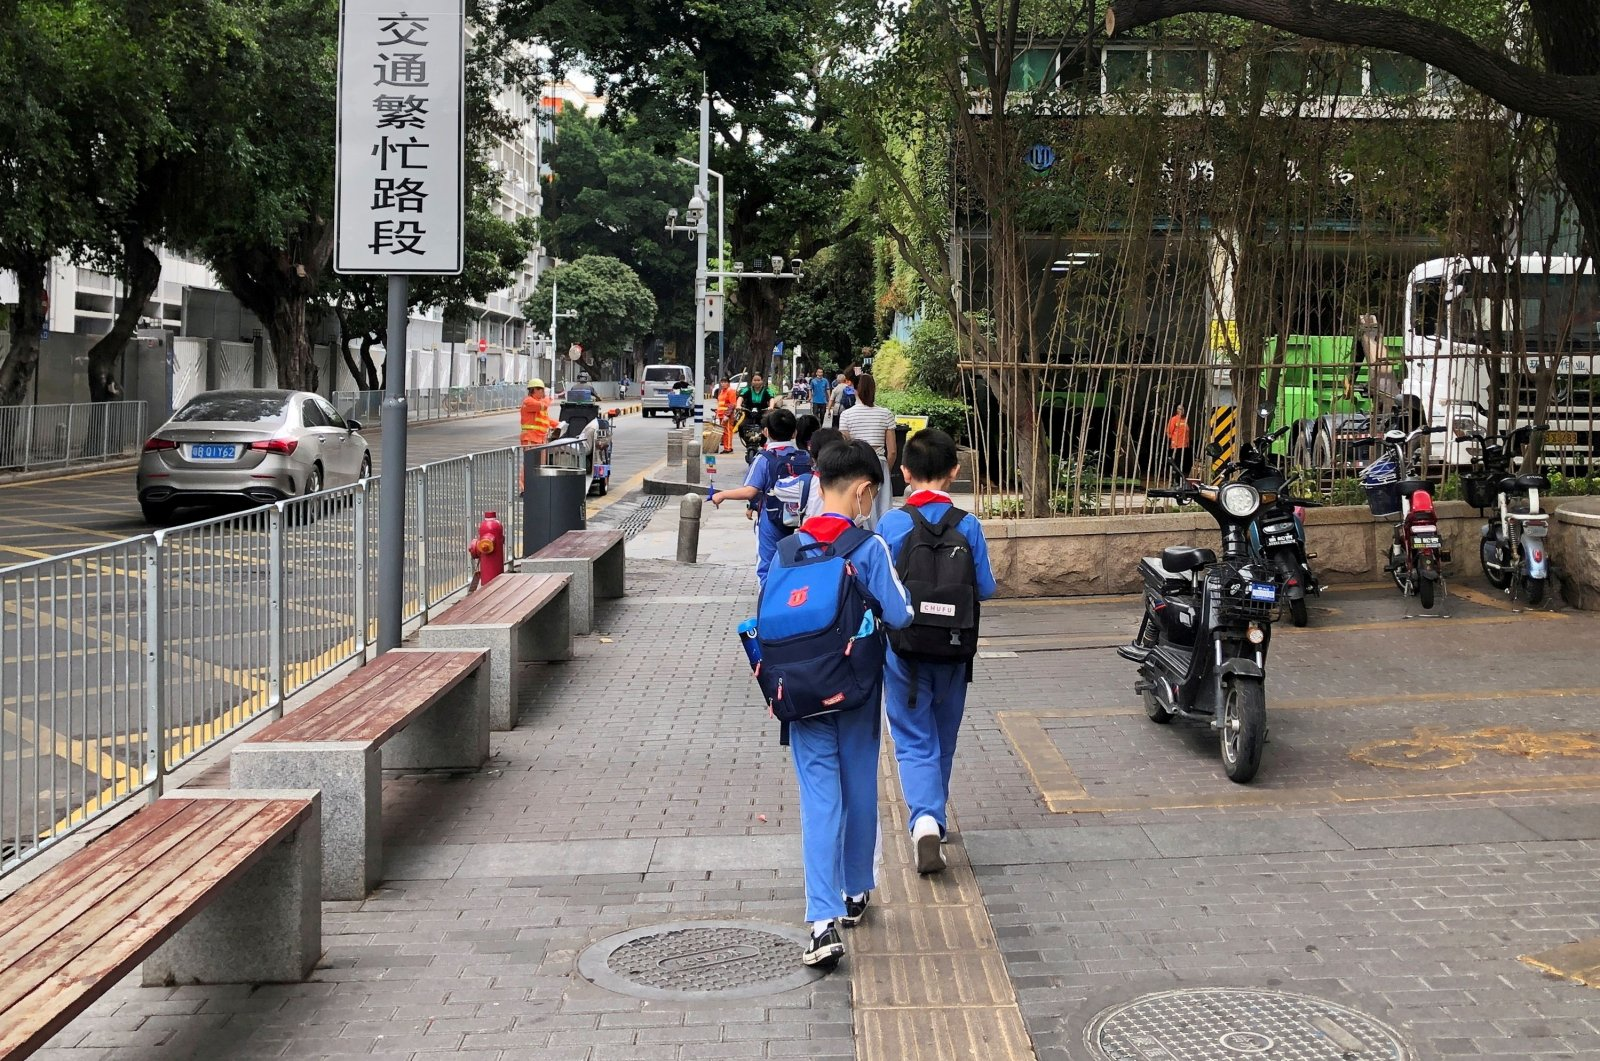 Children leave a school in the Shekou area of Shenzhen, Guangdong province, China, April 20, 2021. (Reuters Photo)